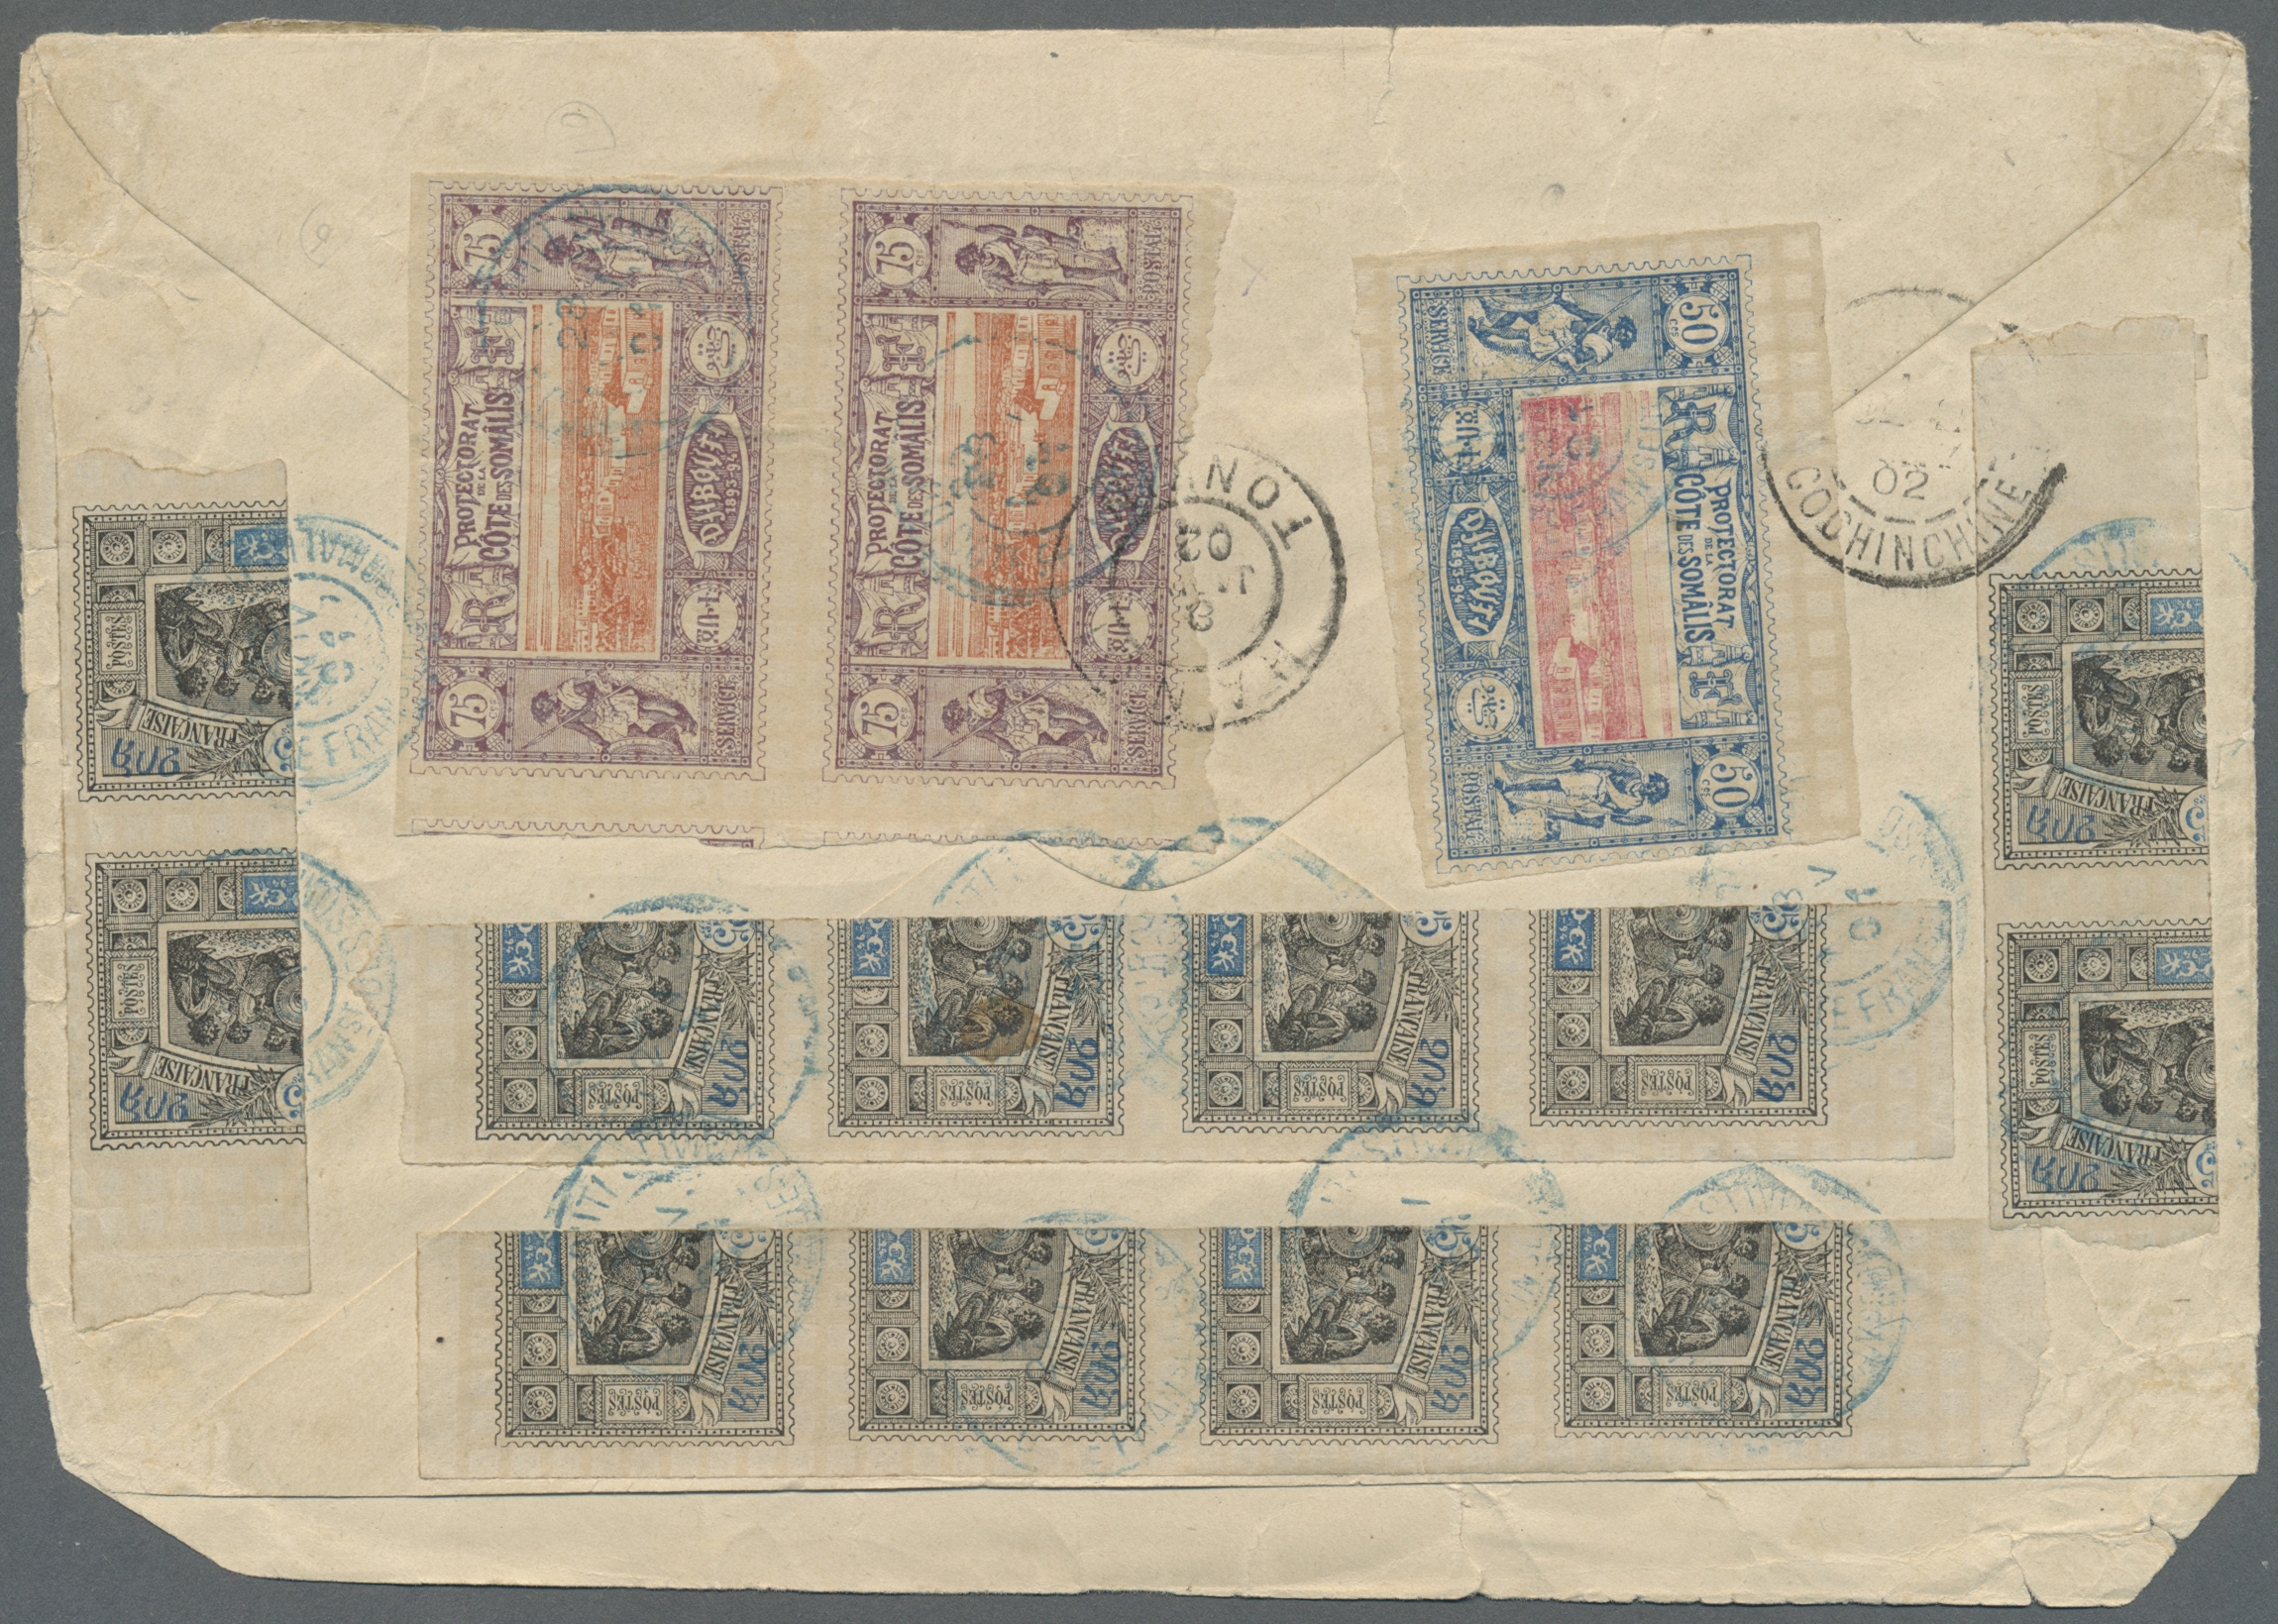 Lot 485 - französische somaliküste  -  Auktionshaus Christoph Gärtner GmbH & Co. KG Auction #41 Special auction part one